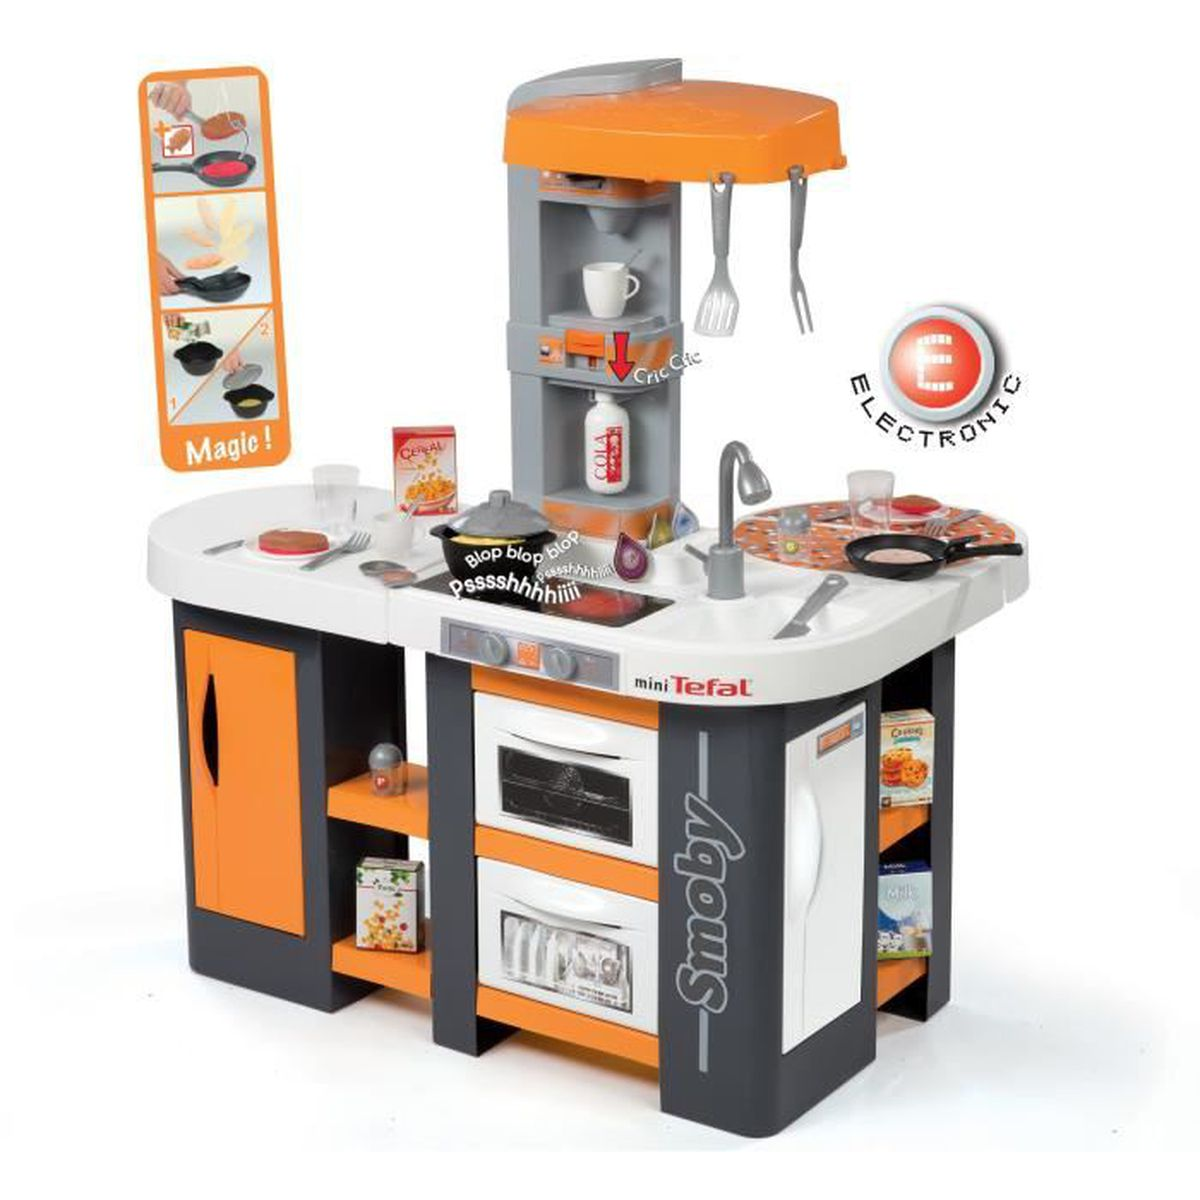 tefal cuisine studio xl achat vente dinette cuisine cdiscount. Black Bedroom Furniture Sets. Home Design Ideas